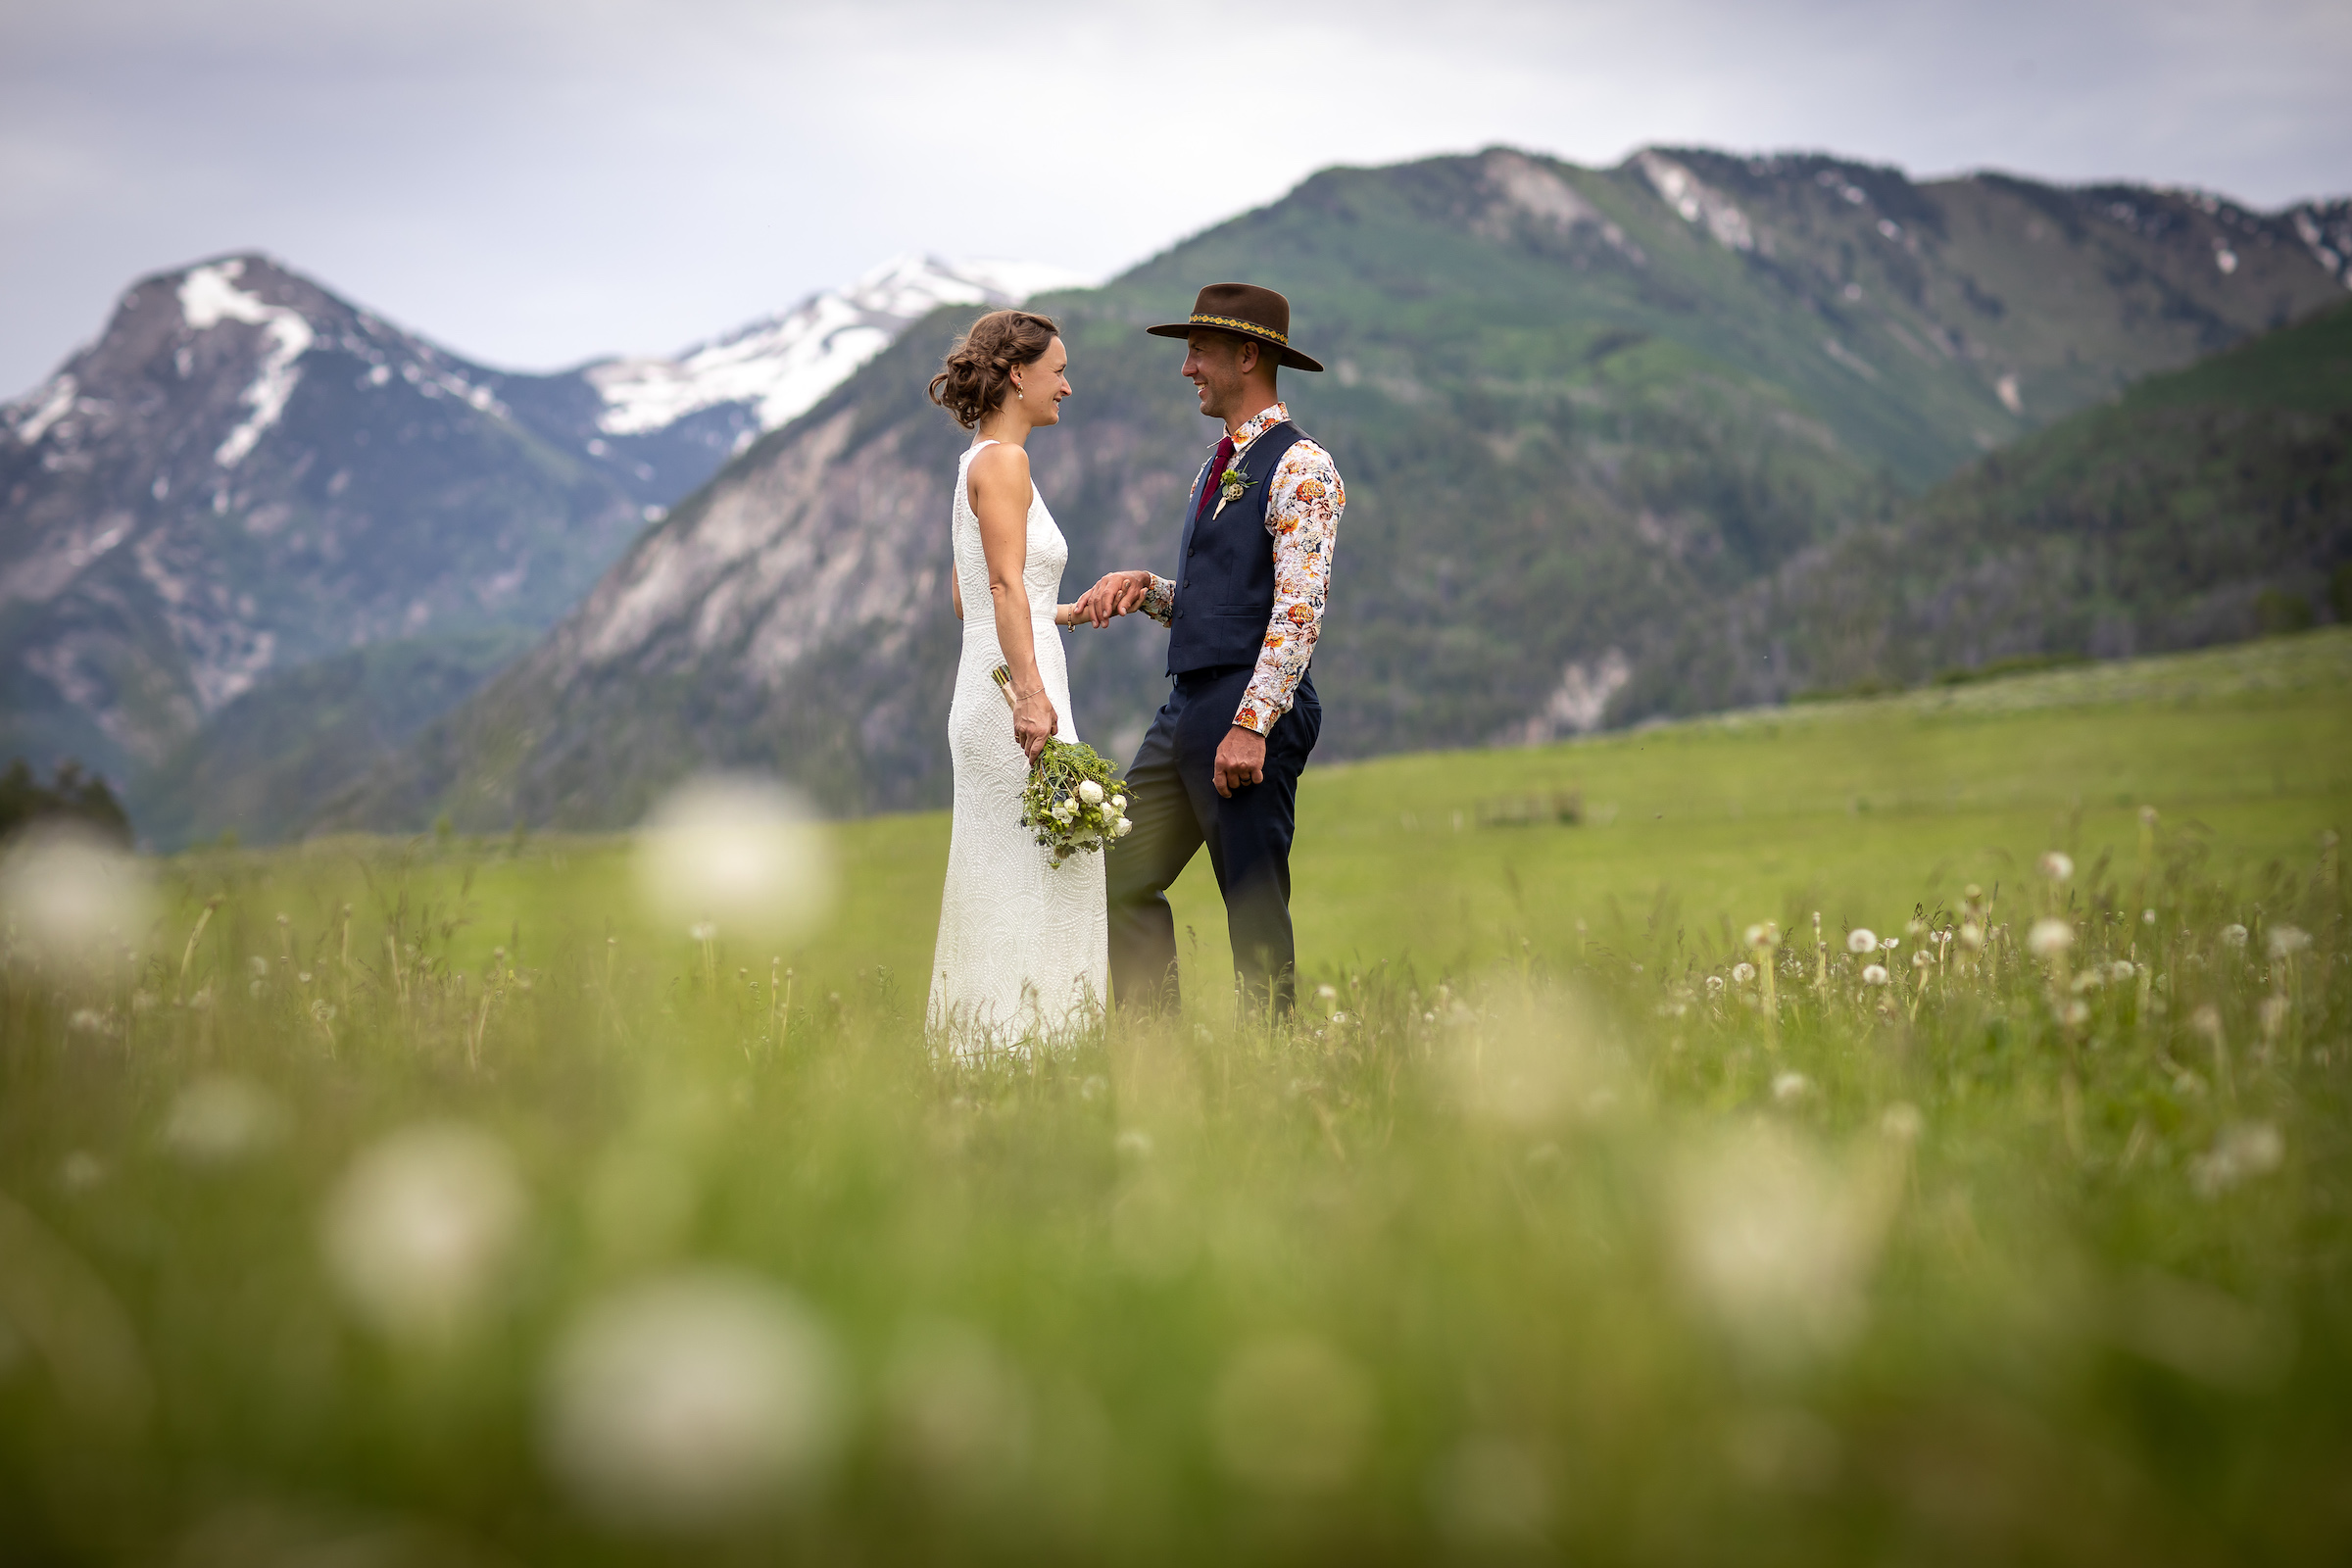 Darien Ranch | Wedding venue located in Marble, Colorado featured on WED West Slope - a directory for wedding vendors.